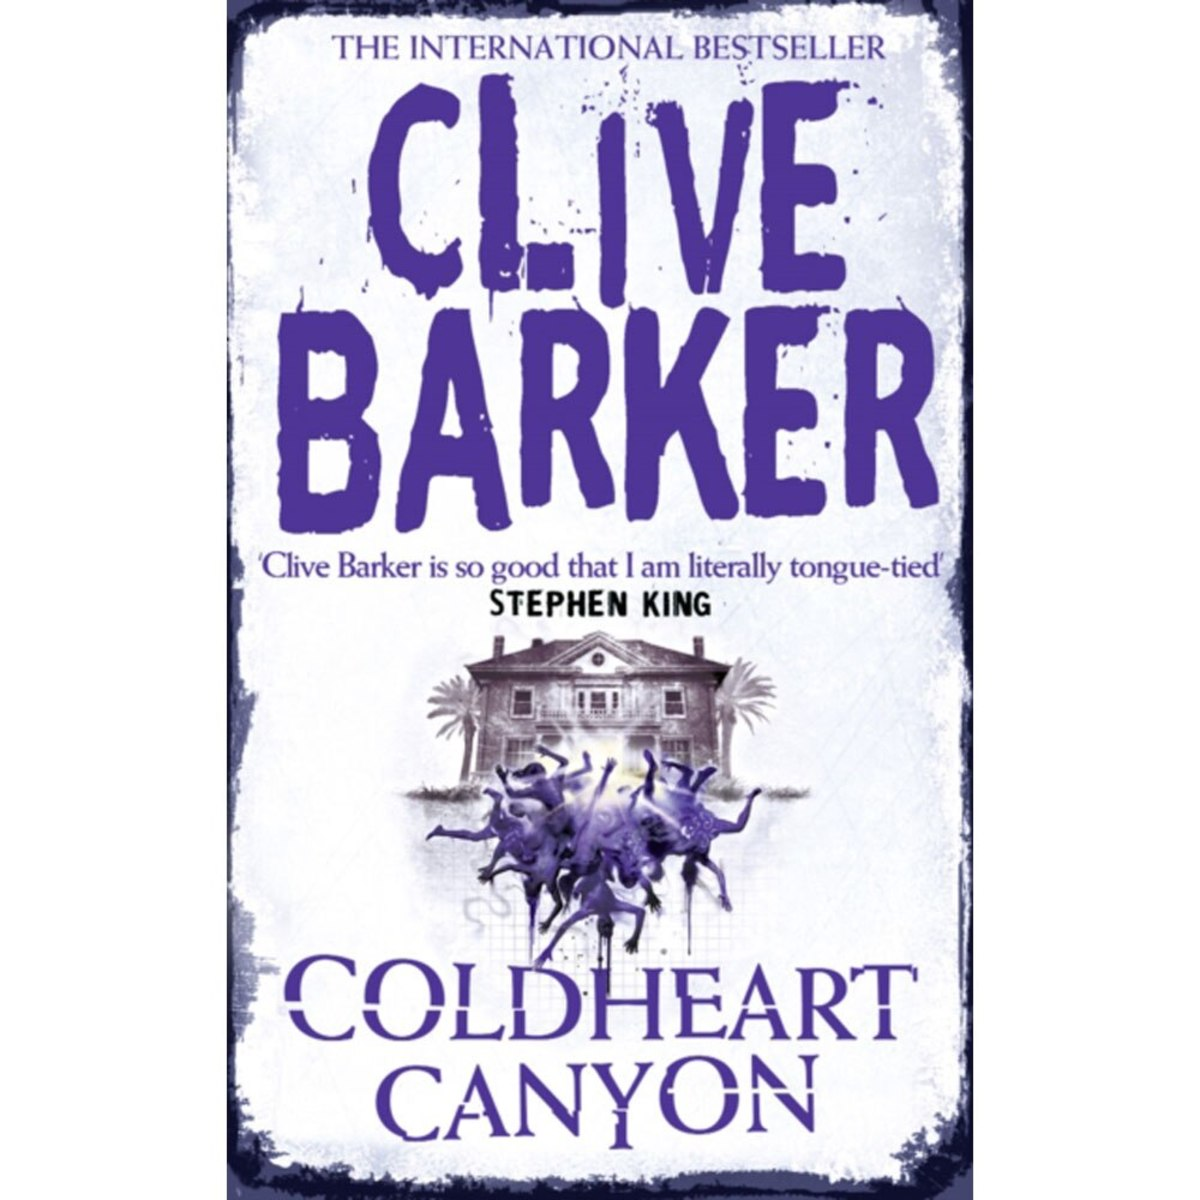 book-review-cold-heart-canyon-terror-starts-below-the-heart-in-hollywood